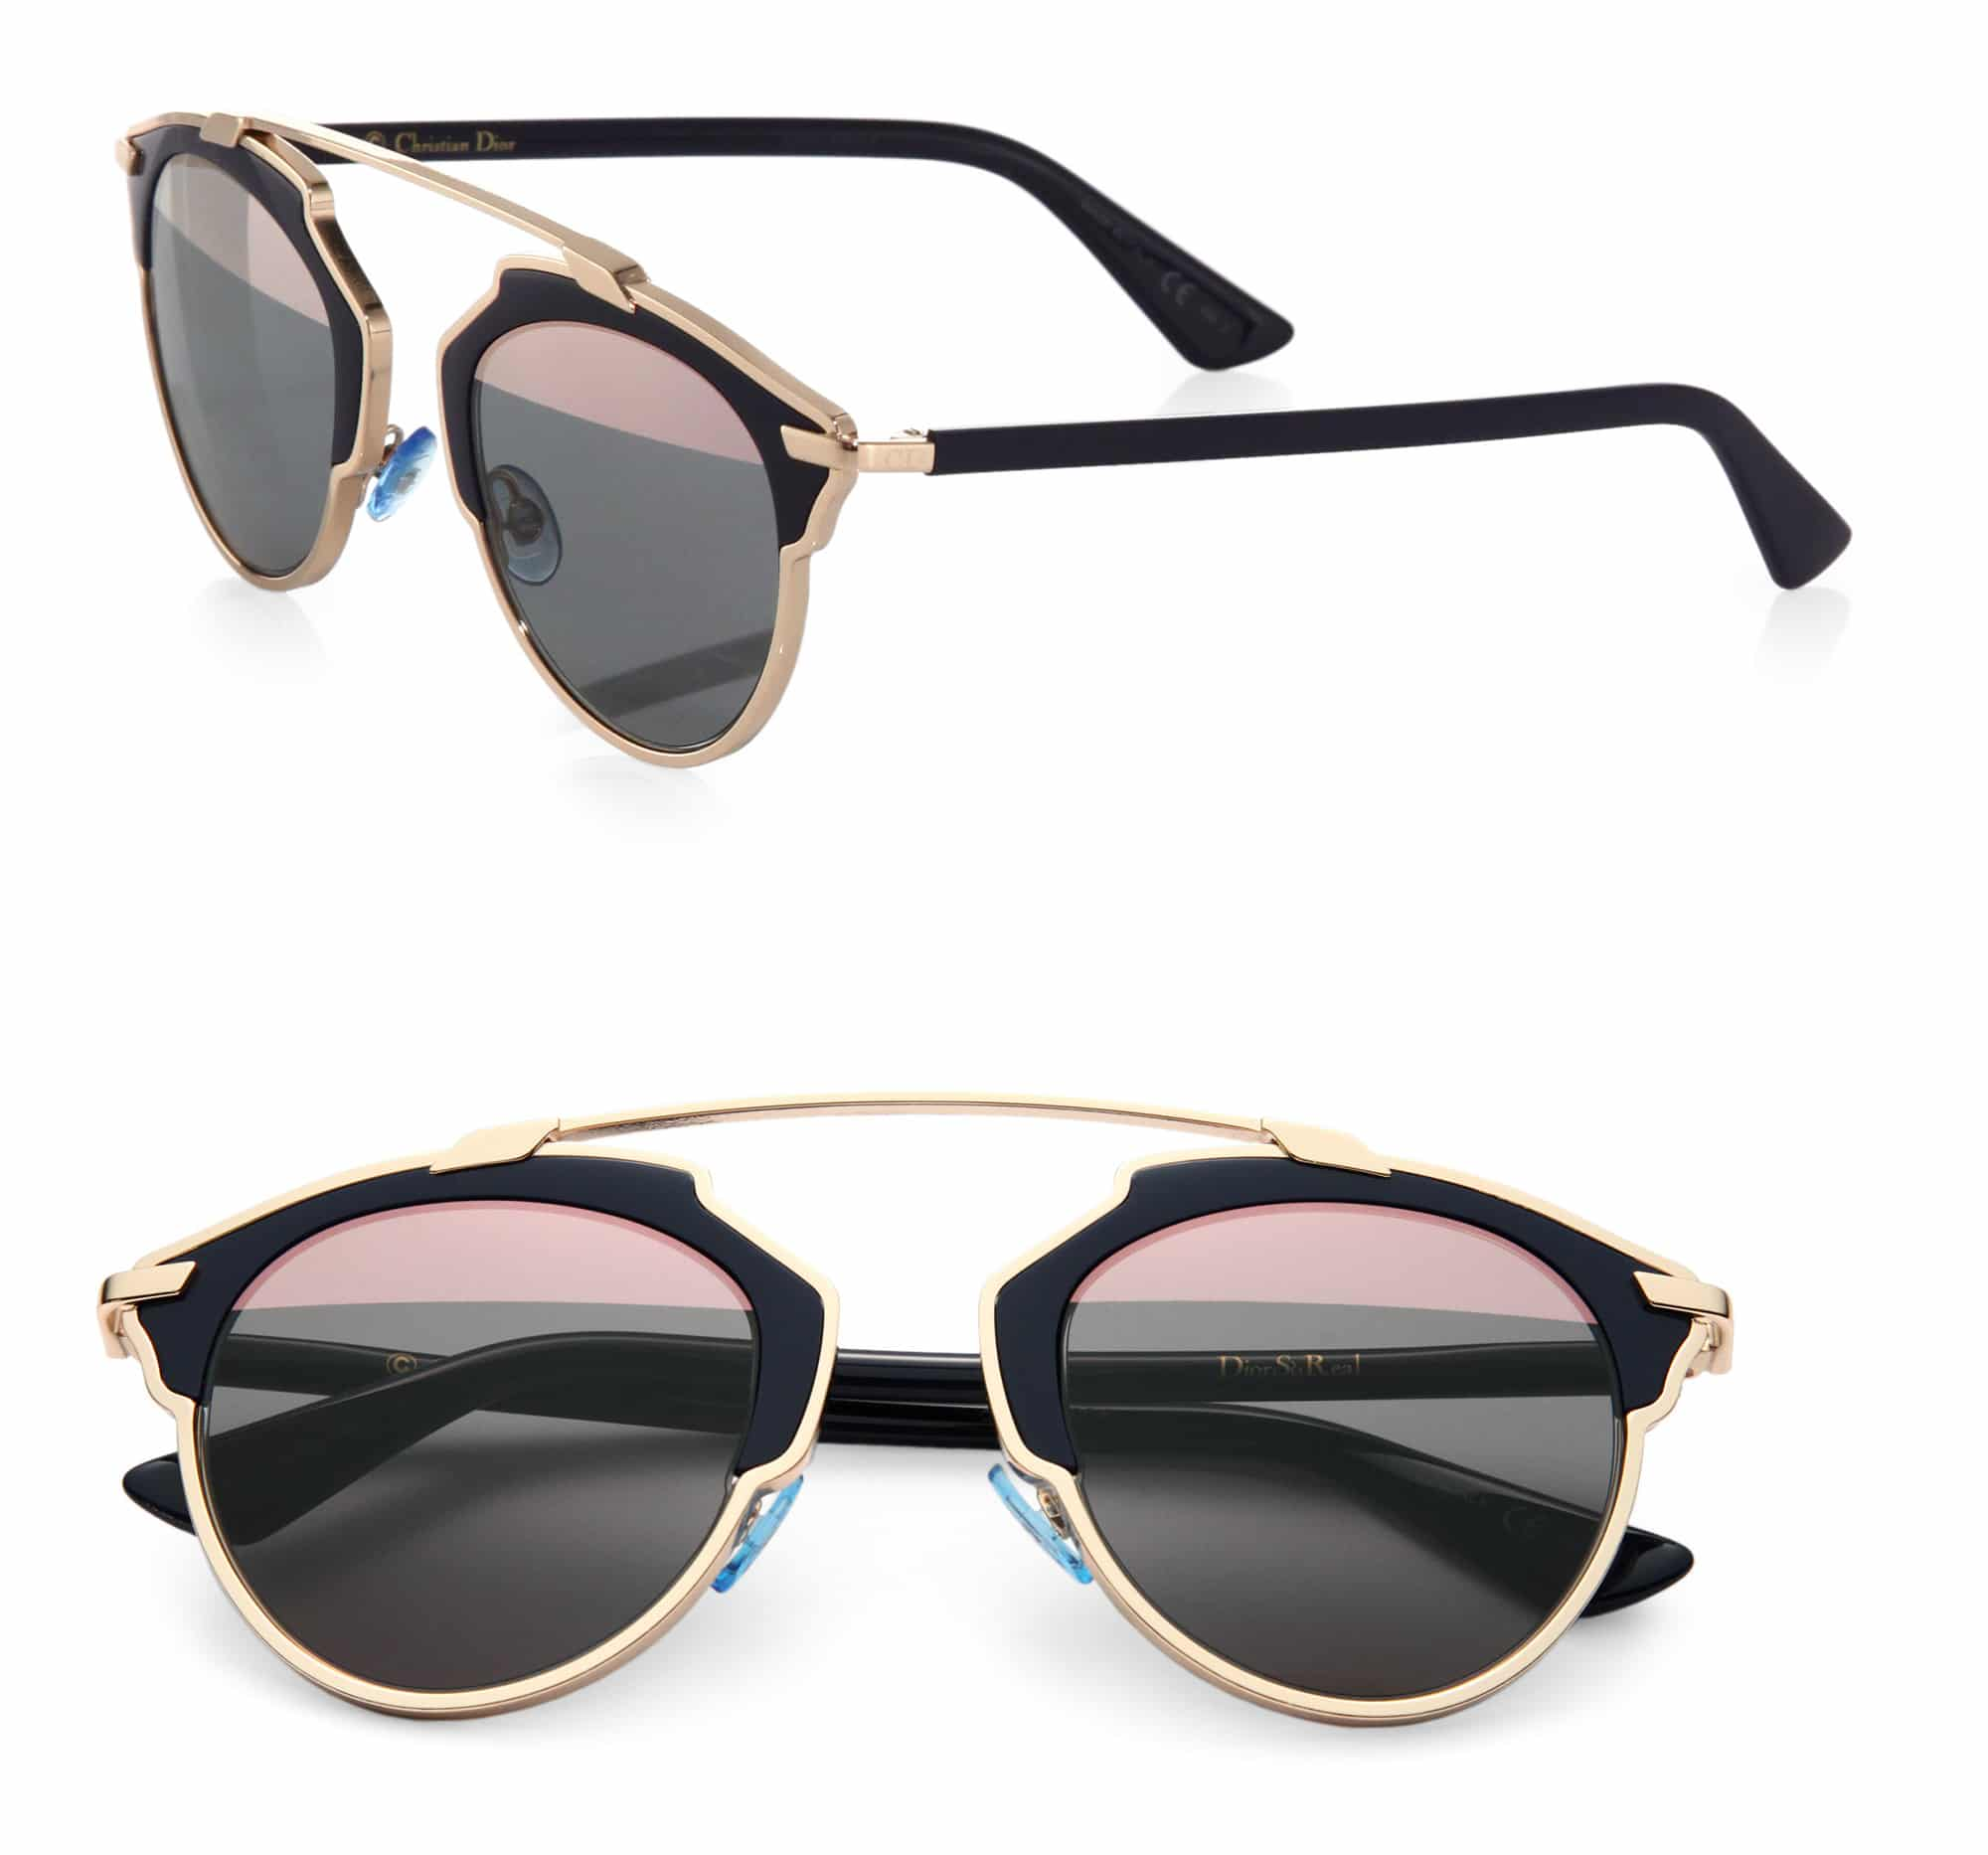 Designer Sunglasses For Spring/Summer 2016 Spotted Fashion